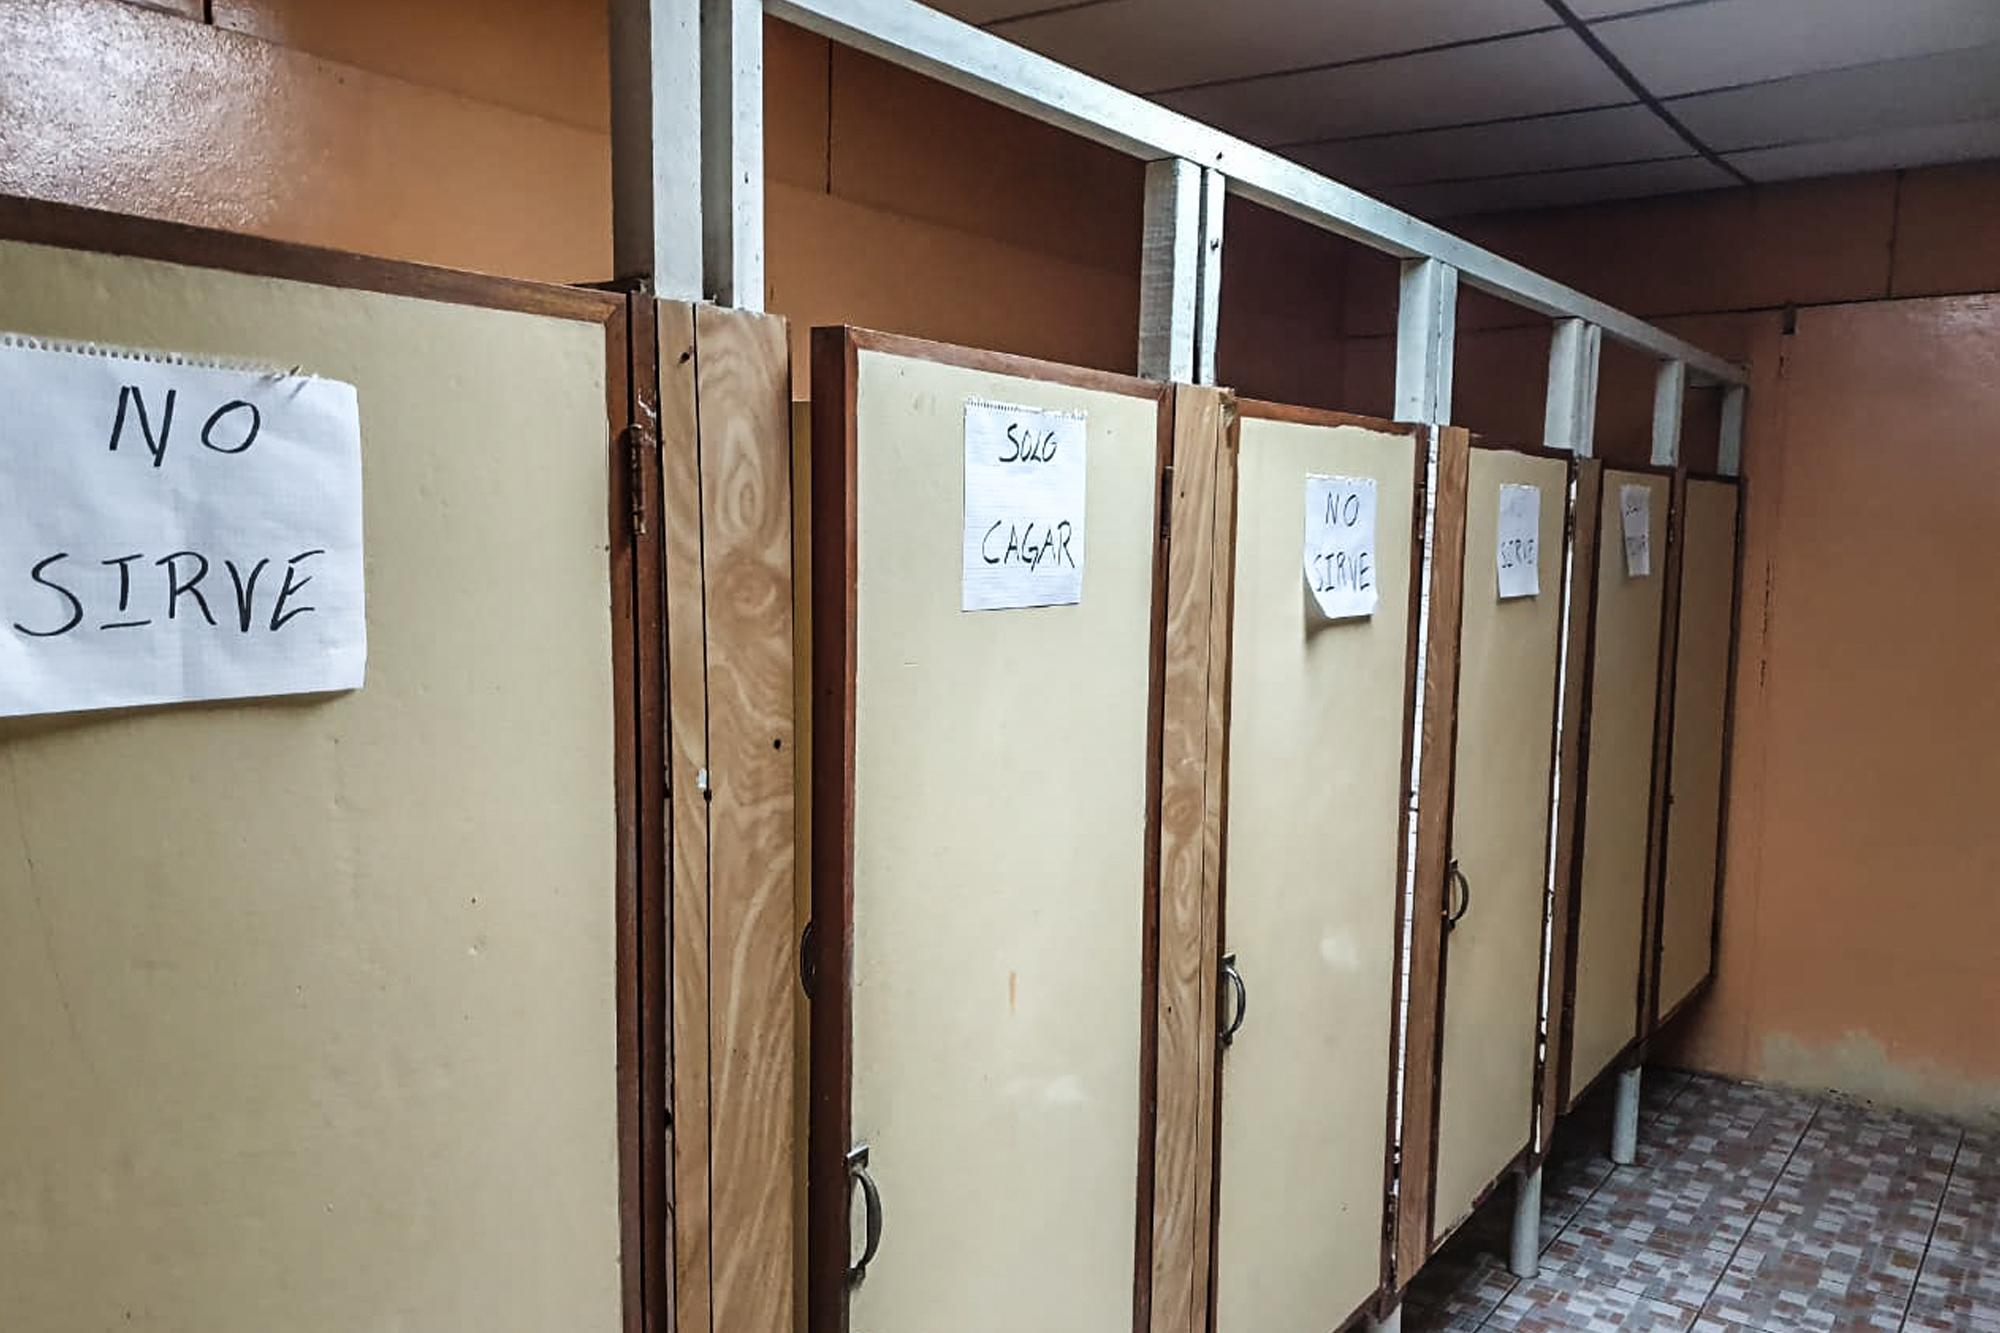 "Signs read: ""Out of order;"" and ""Shit Only."" The restroom in Villa Olímpica, a site lacking the appropriate amenities to shelter people. This facility continues to house detained Salvadorans accused of violating domestic quarantine. Image courtesy of the family."